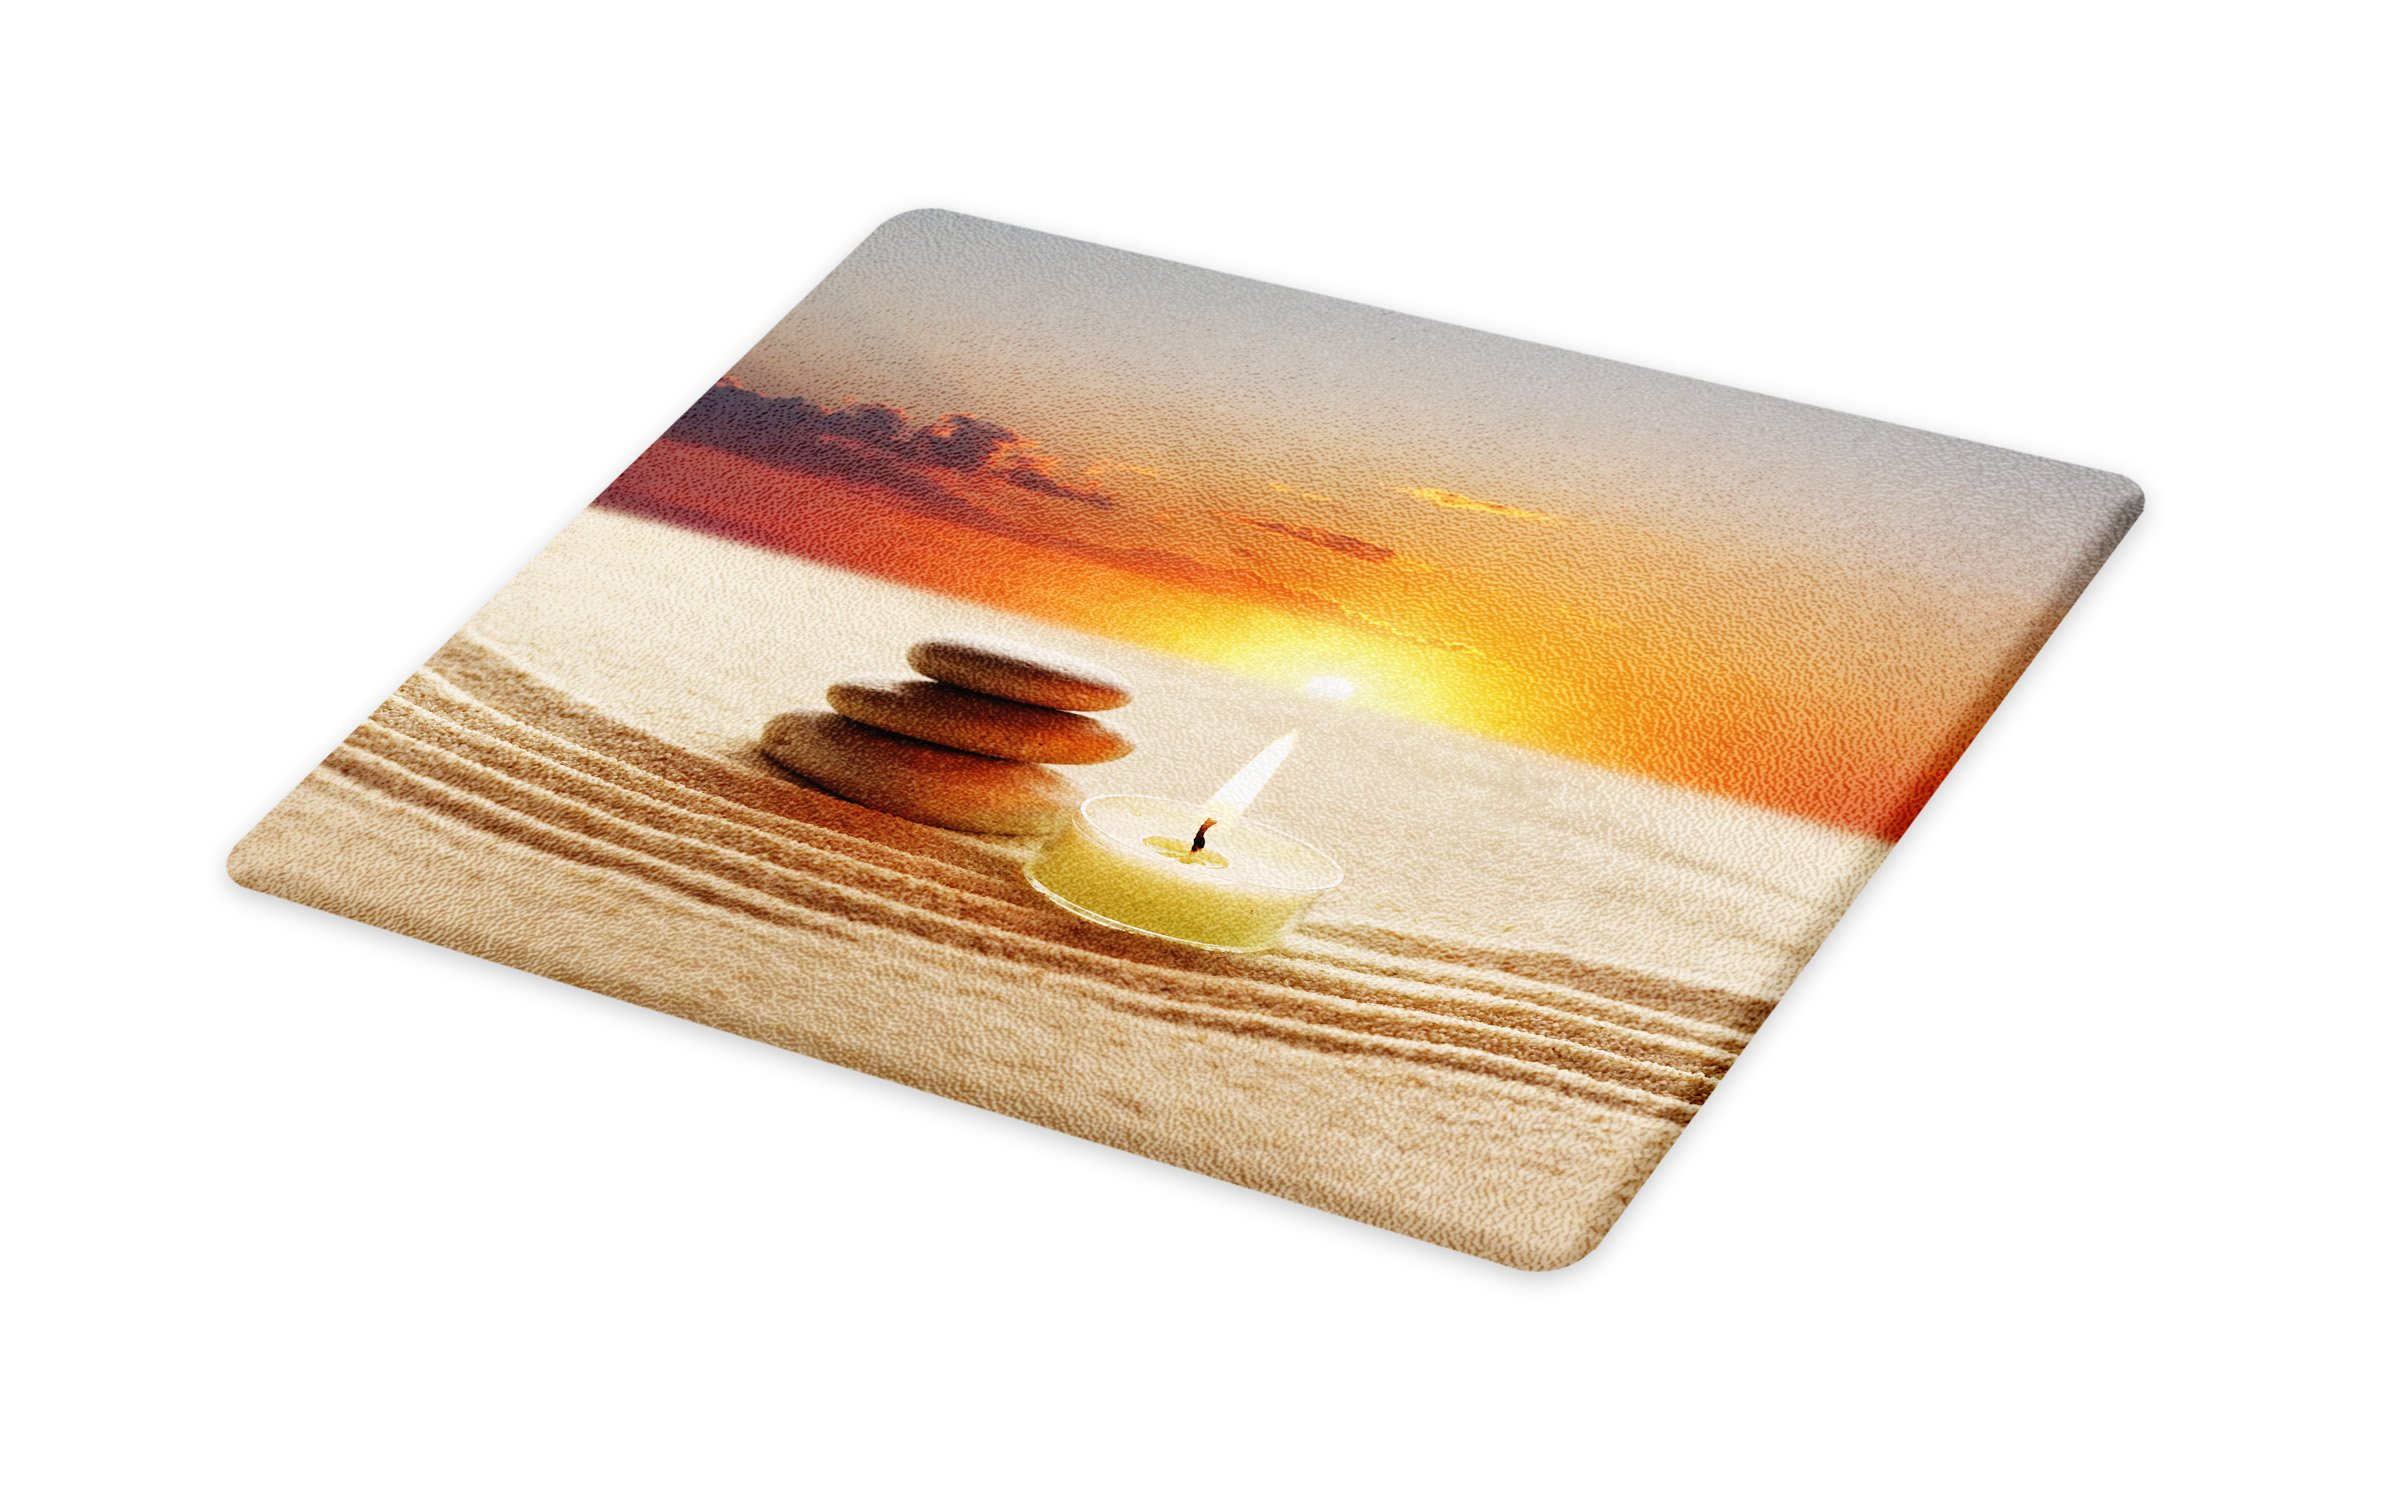 Lunarable Spa Cutting Board, Little Candle with Three Stones Middle of Sand with Sunset Serene Landscape, Decorative Tempered Glass Cutting and Serving Board, Large Size, White Brown and Orange